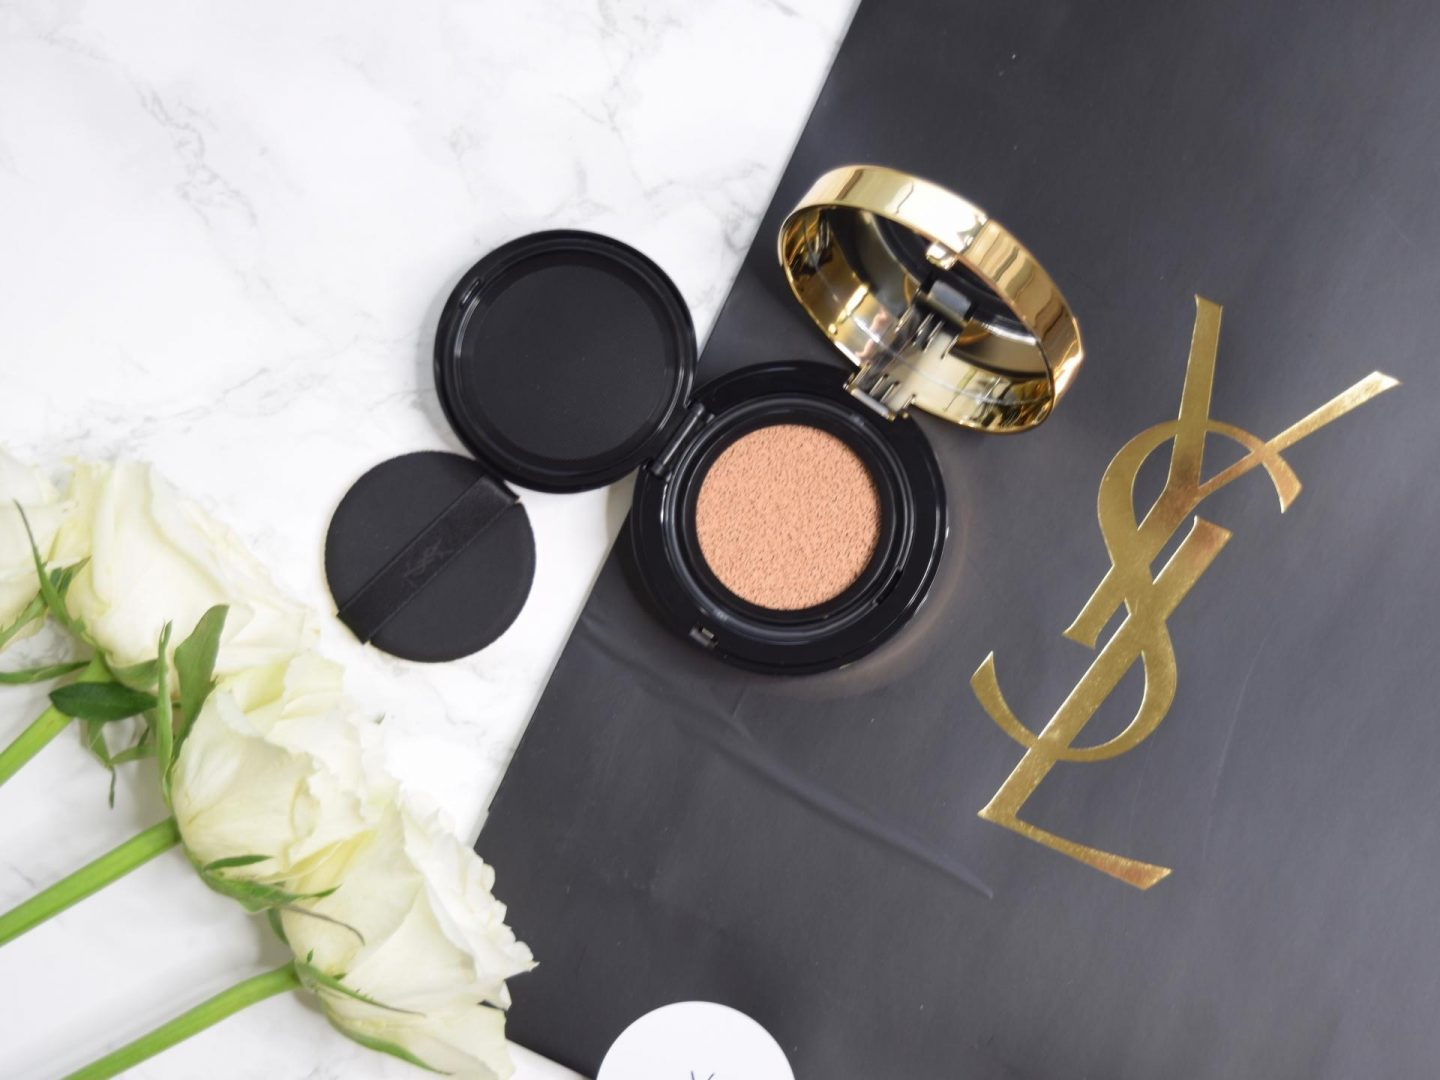 YSL Fusion Ink Cushion Foundation Review